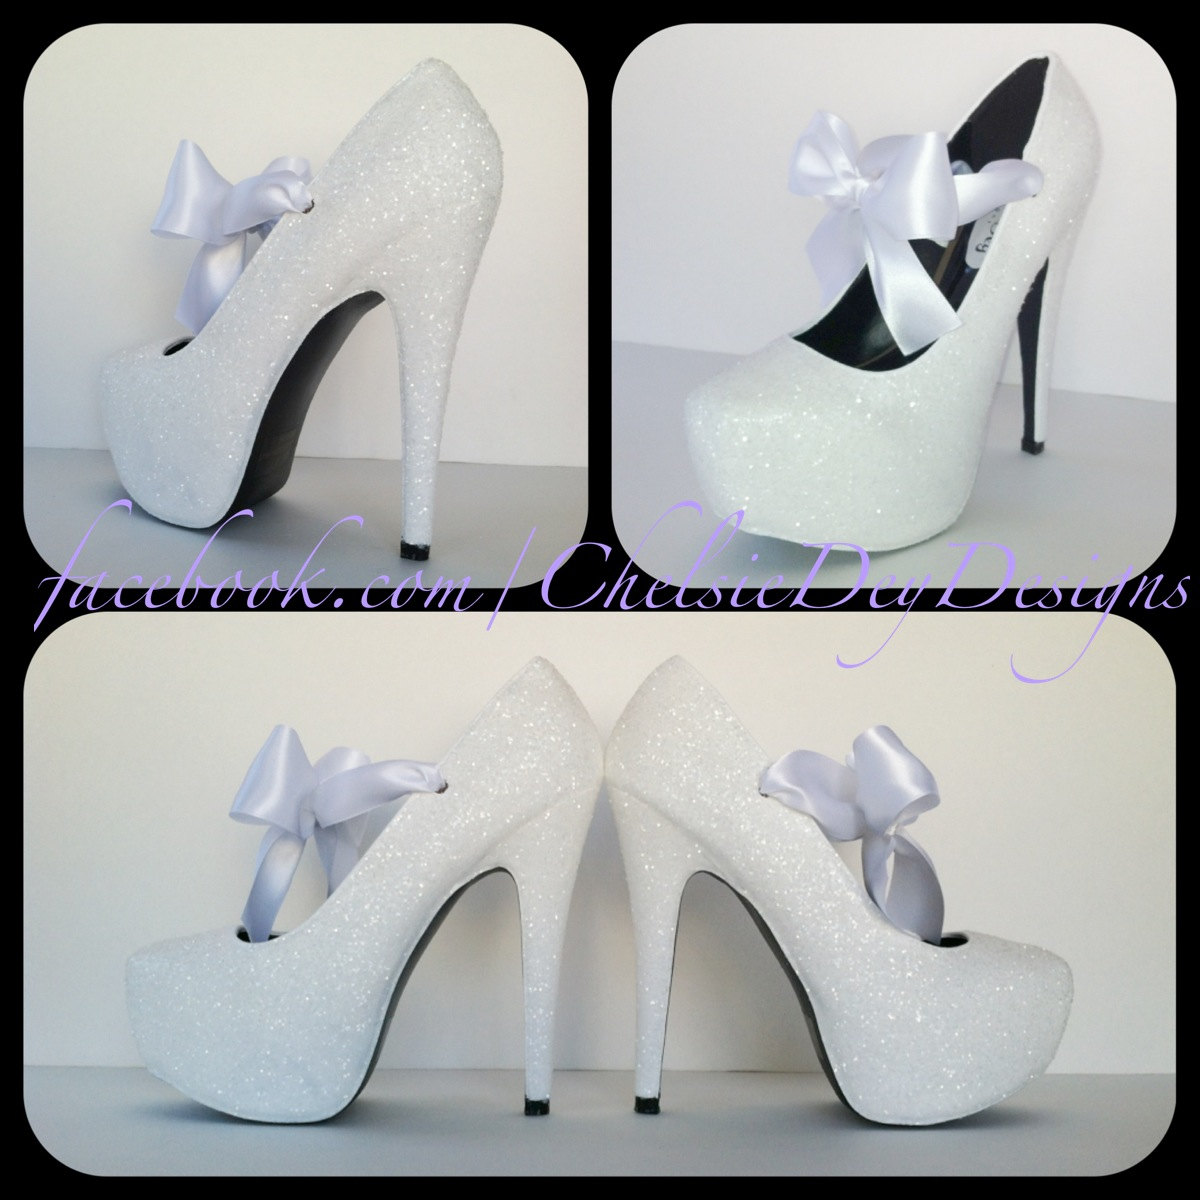 a062f1beb06 White Glitter High Heels, Wedding Platform Pumps, Sparkly Shoes with Satin  Bows